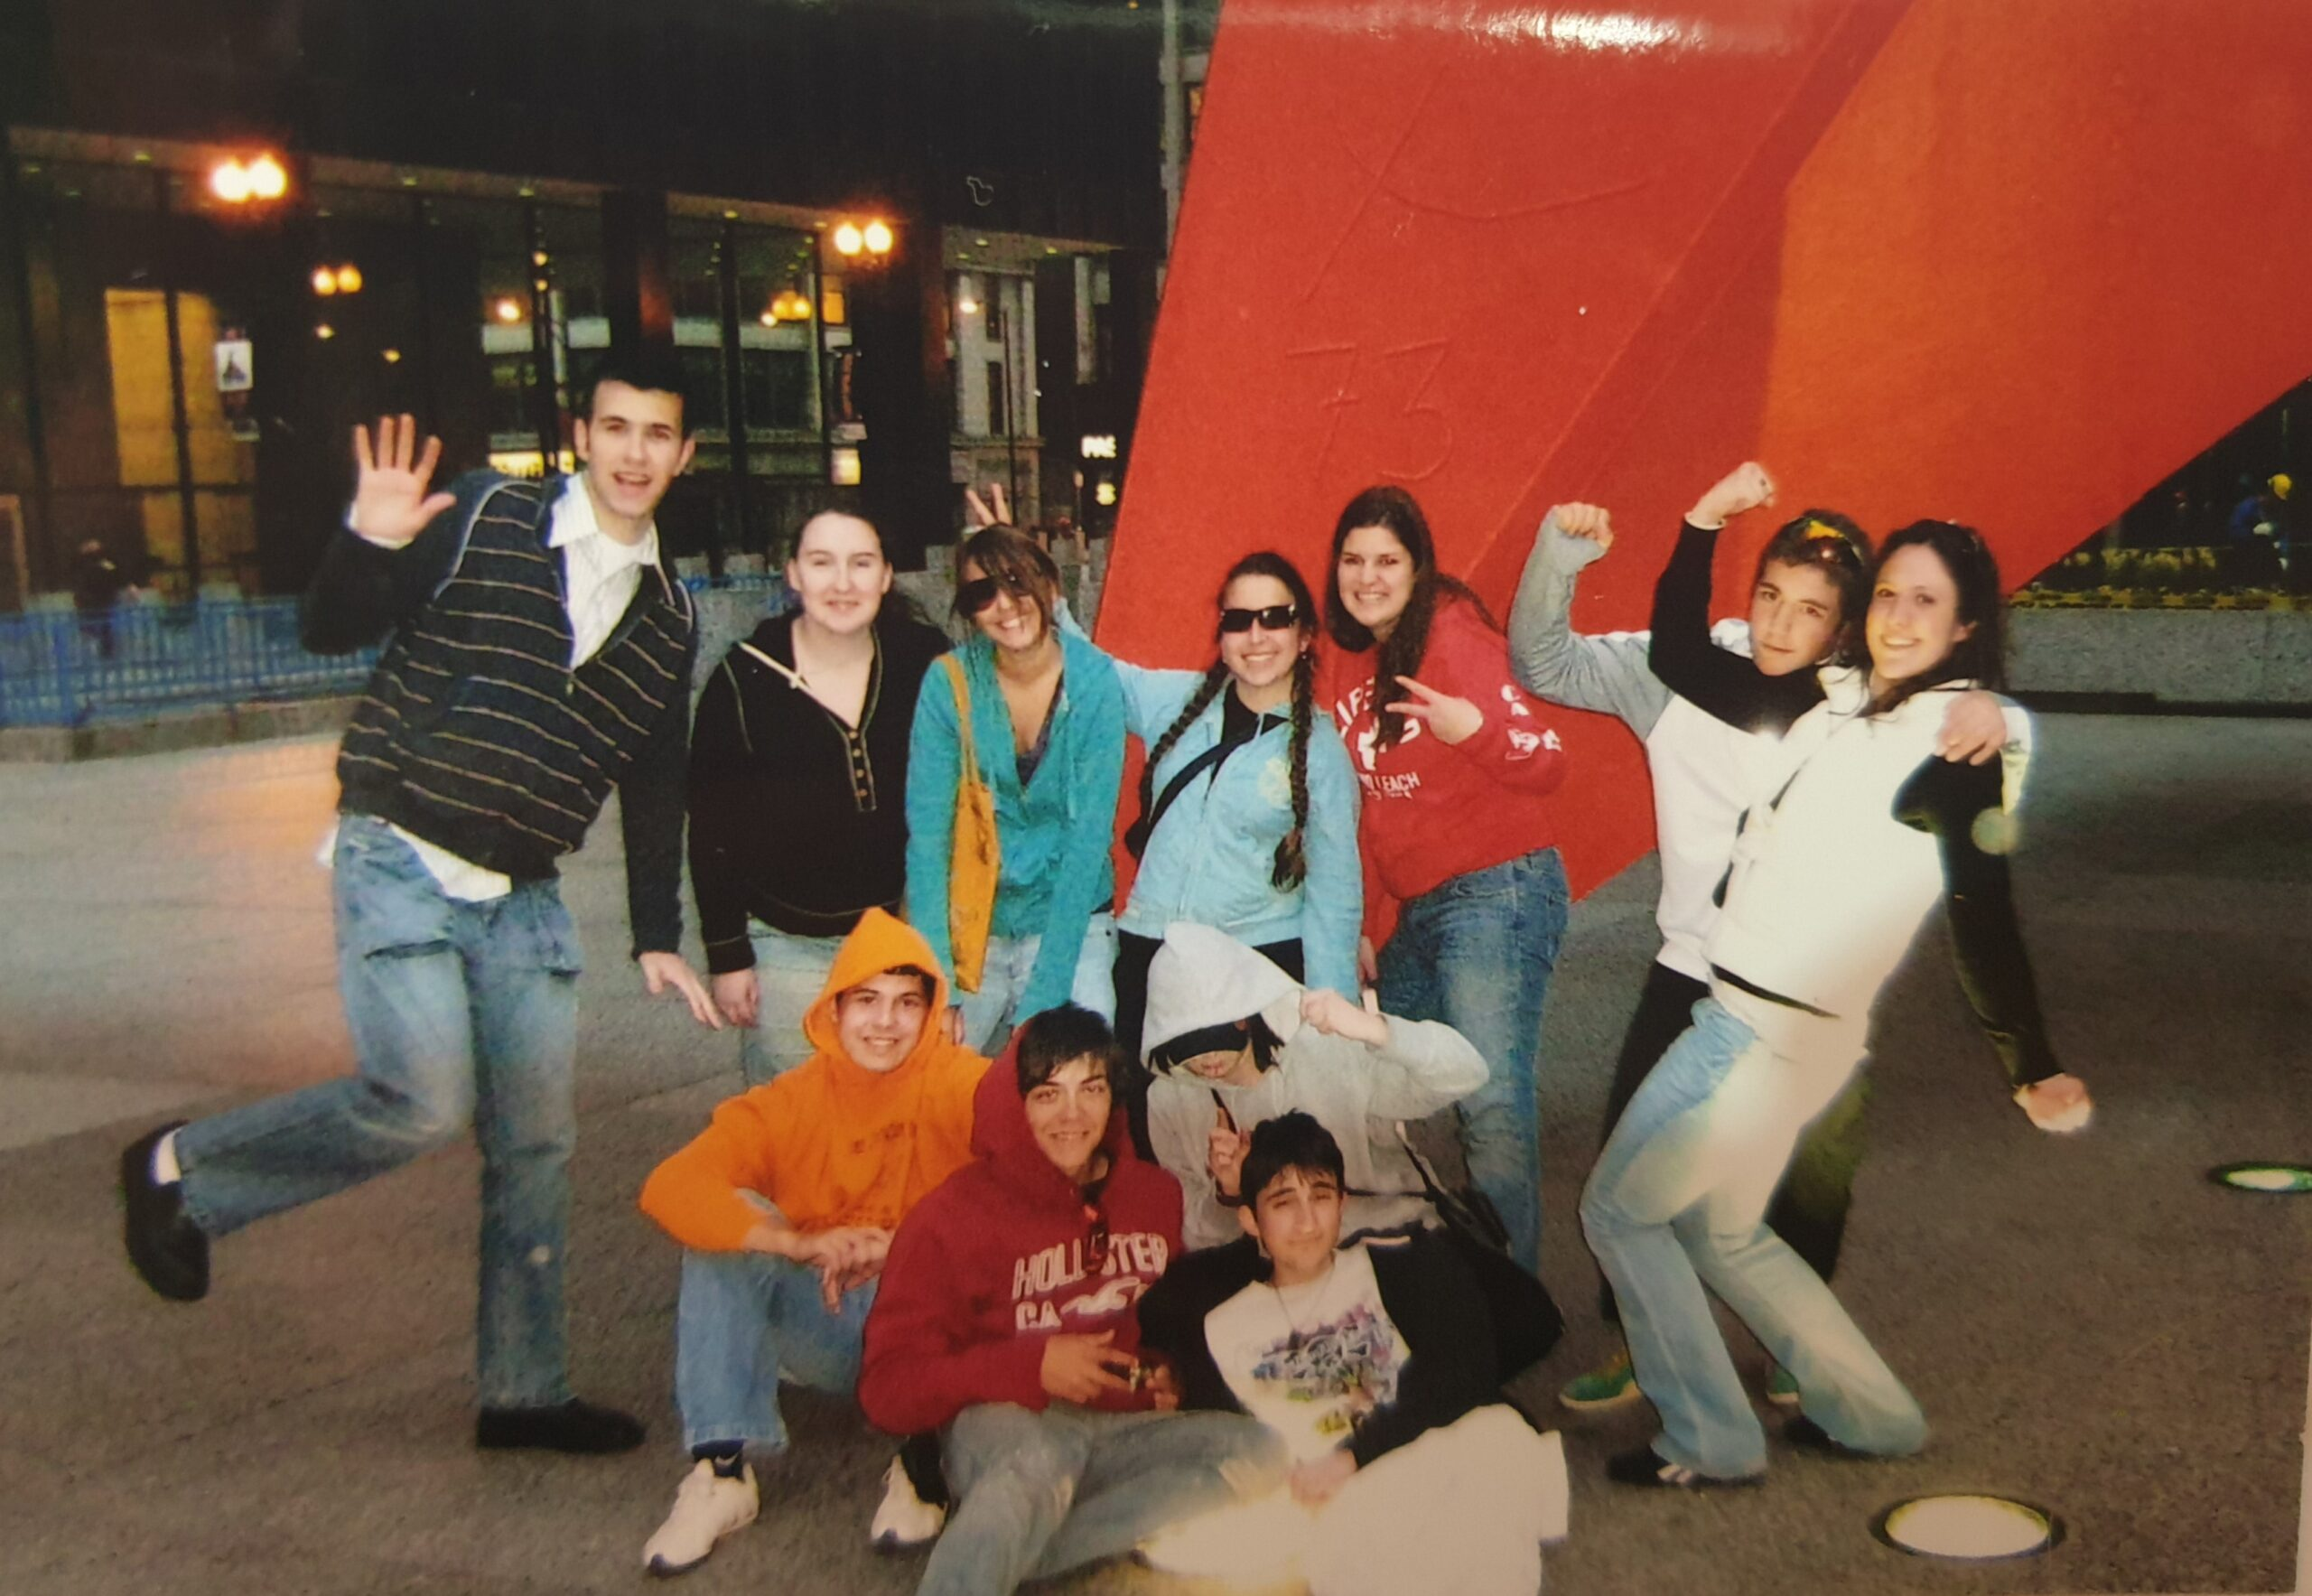 Valentina with other World Link students during a trip to Chicago while on exchange.